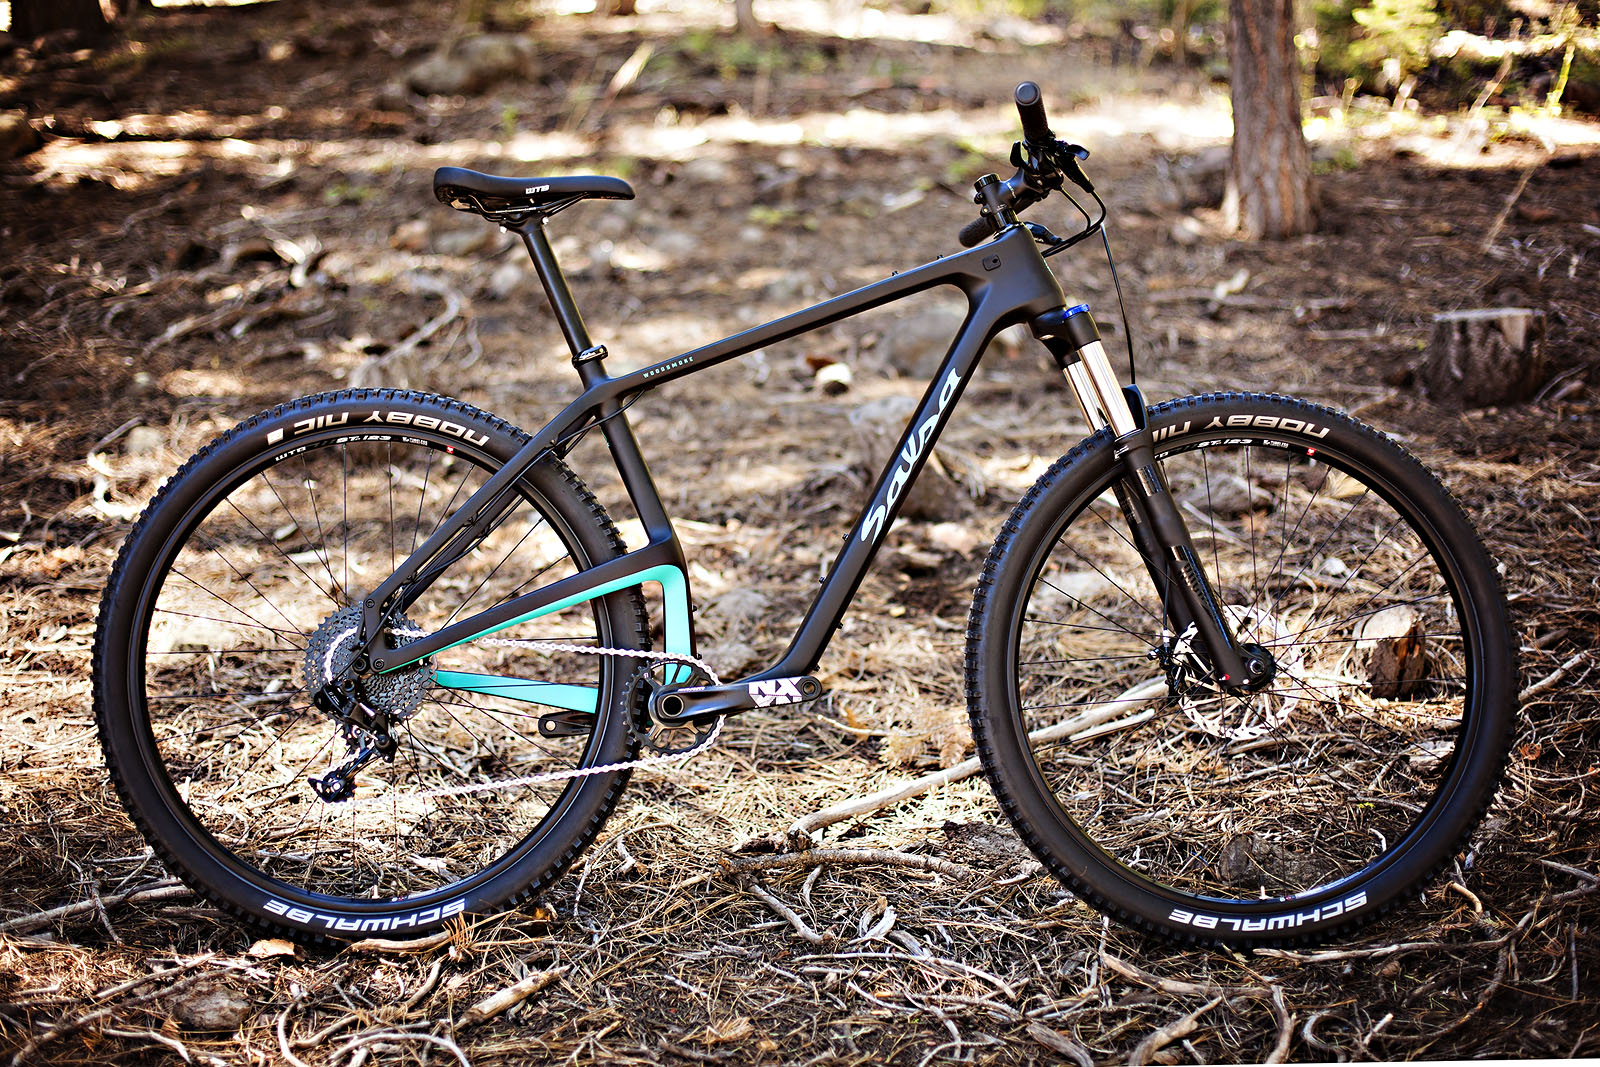 Only offered with traditional 29er hoops, the $2000 NX1 kit sports a primarily SRAM NX drivetrain, Level brakes and a Salsa cockpit.